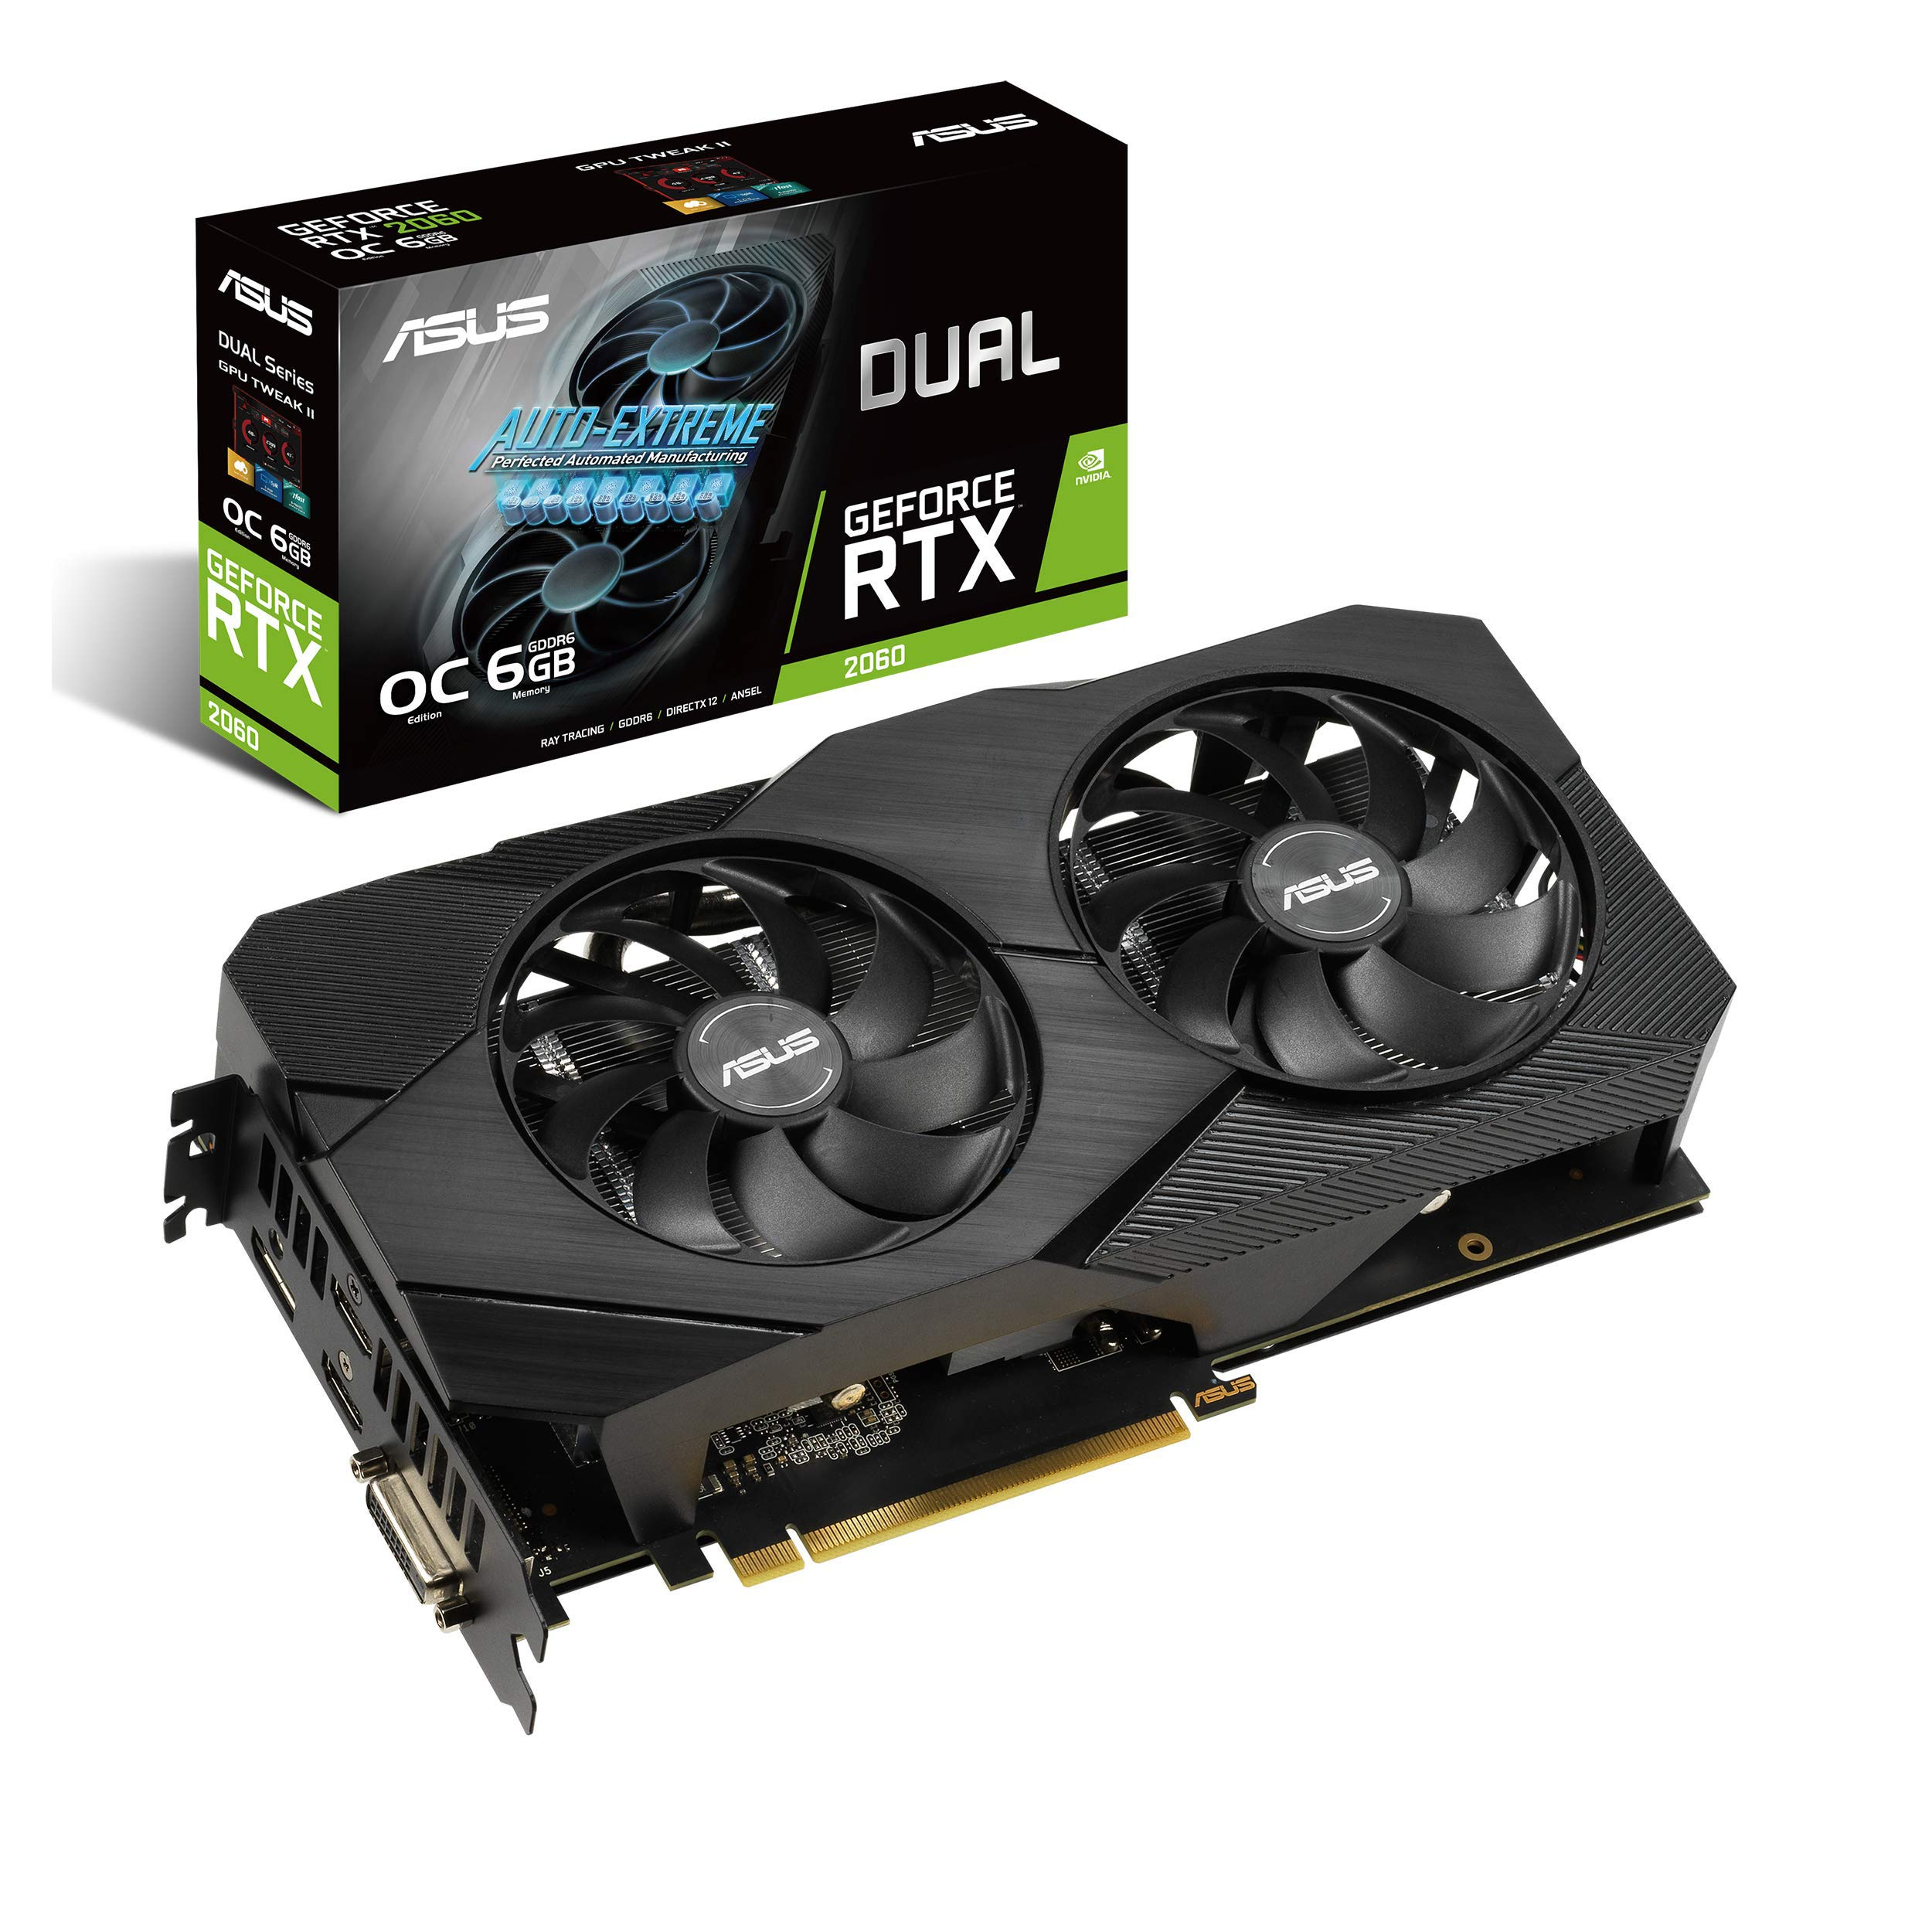 ASUS GeForce RTX 2060 Overclocked 6G GDDR6 Dual-Fan EVO Edition VR Ready HDMI DisplayPort DVI Graphics Card (DUAL-RTX2060-O6G-EVO)